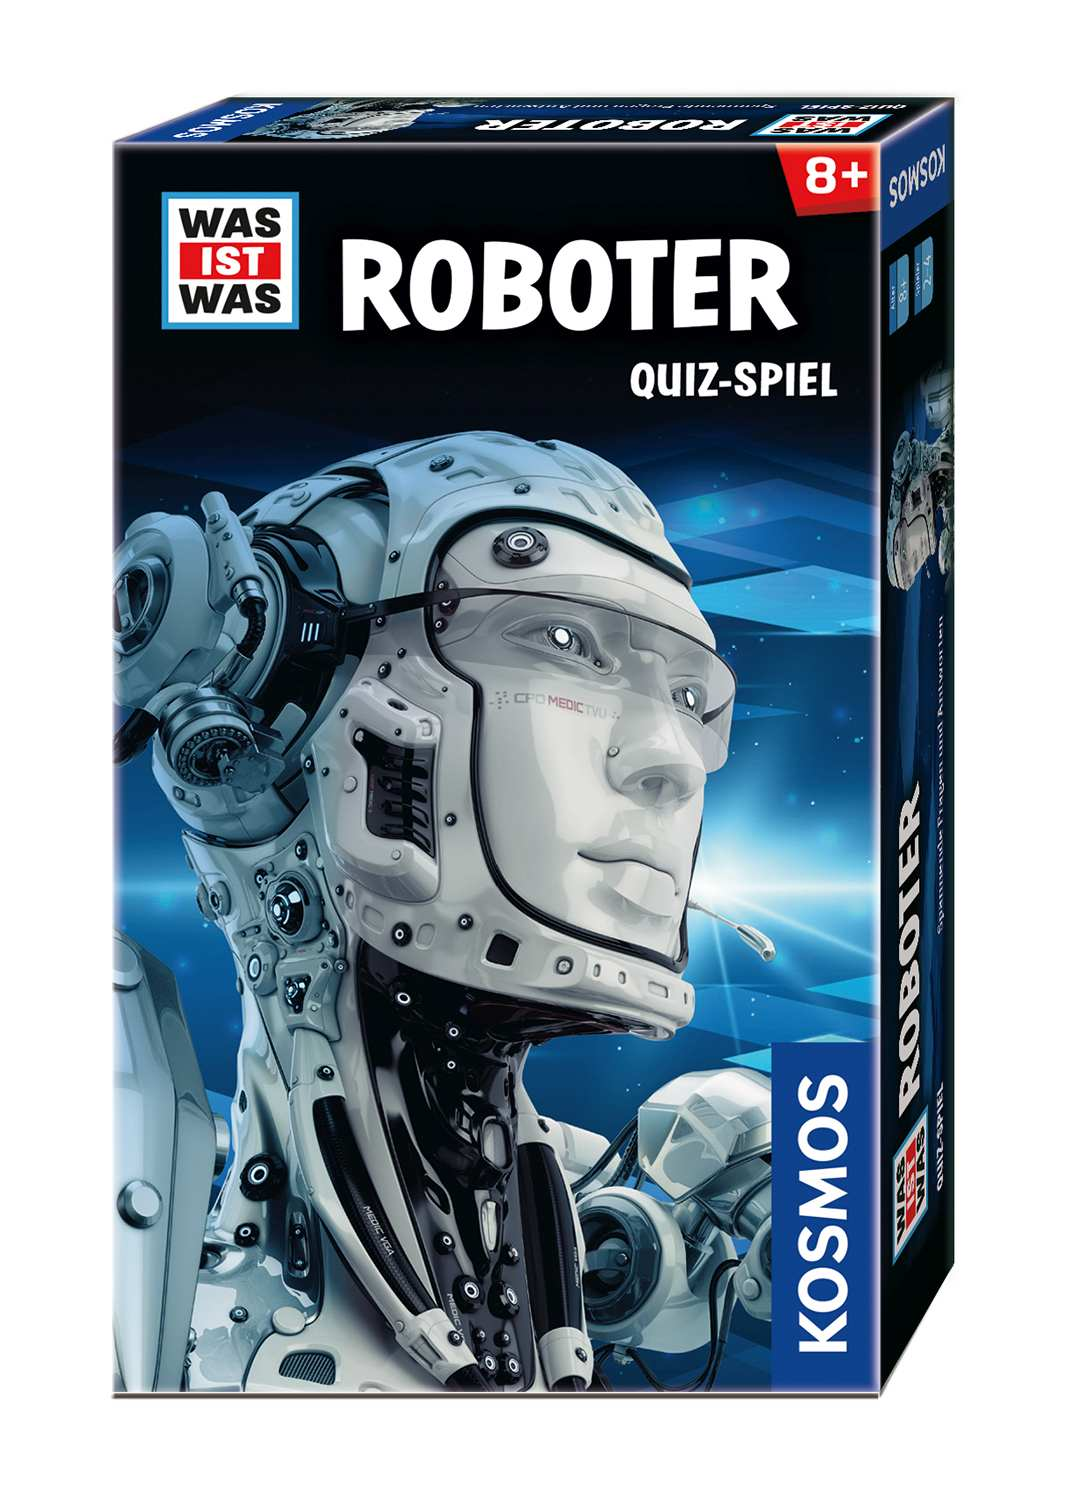 Roboter Spiele